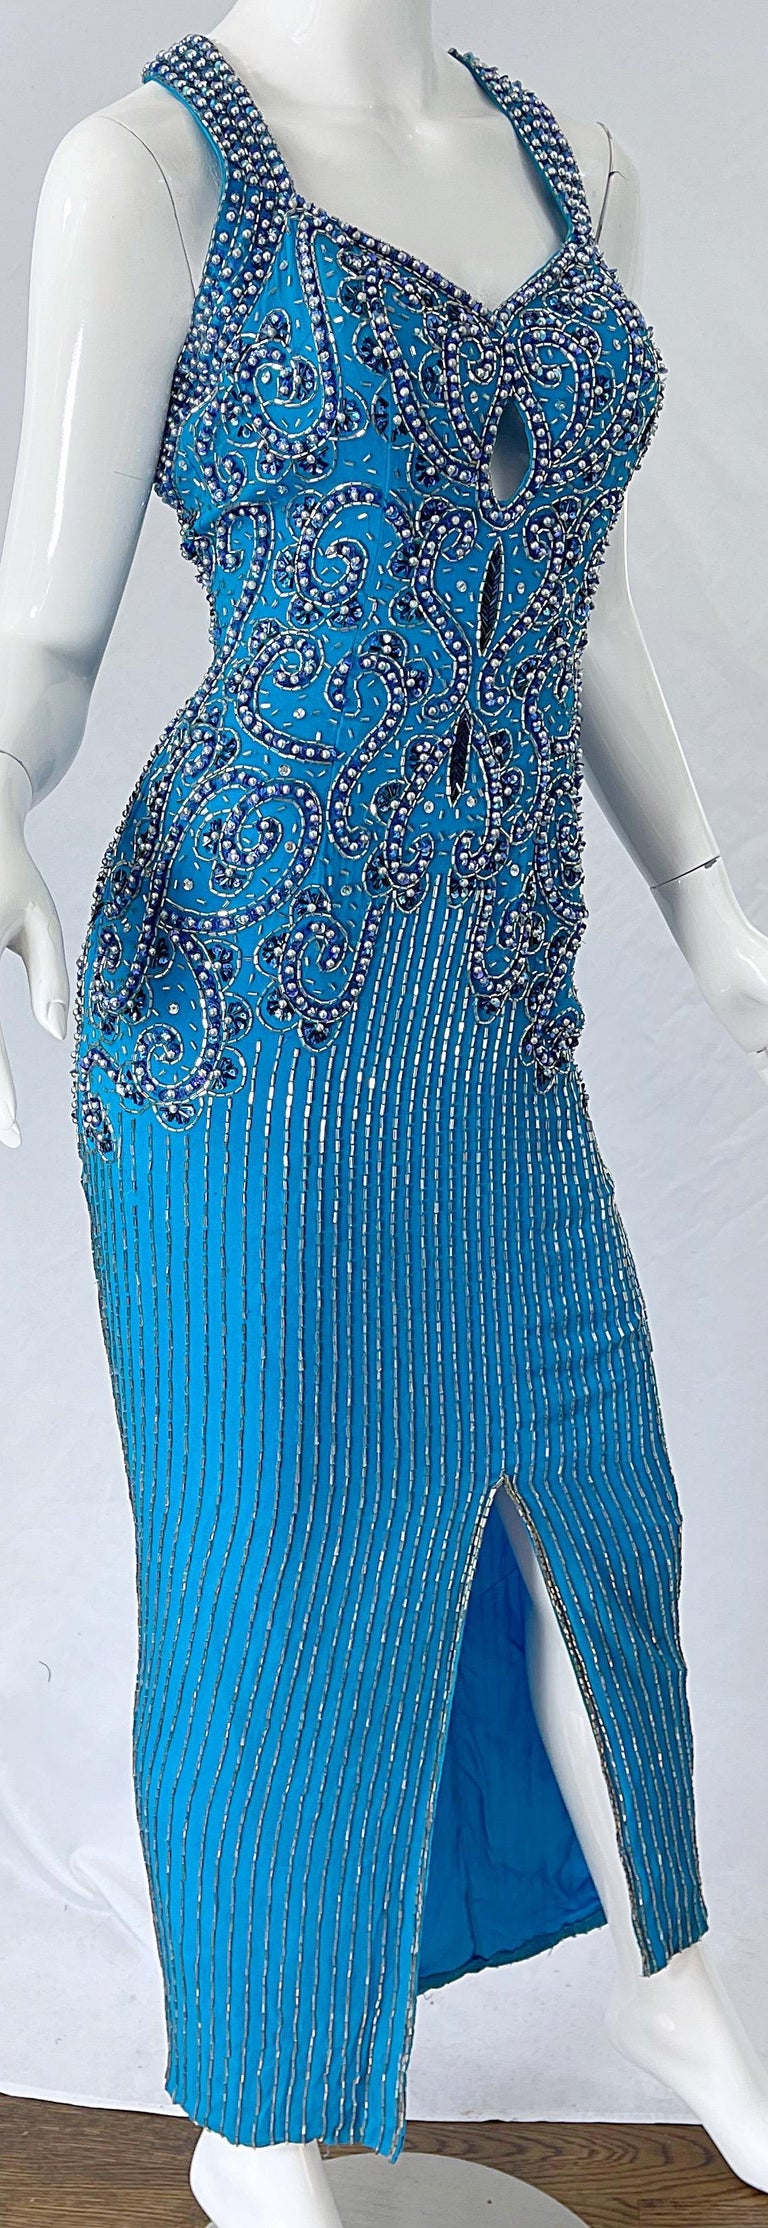 1980s Ted Lapidus Size 6 Turquoise Blue Silk Beaded Sequin Vintage 80s Gown For Sale 7